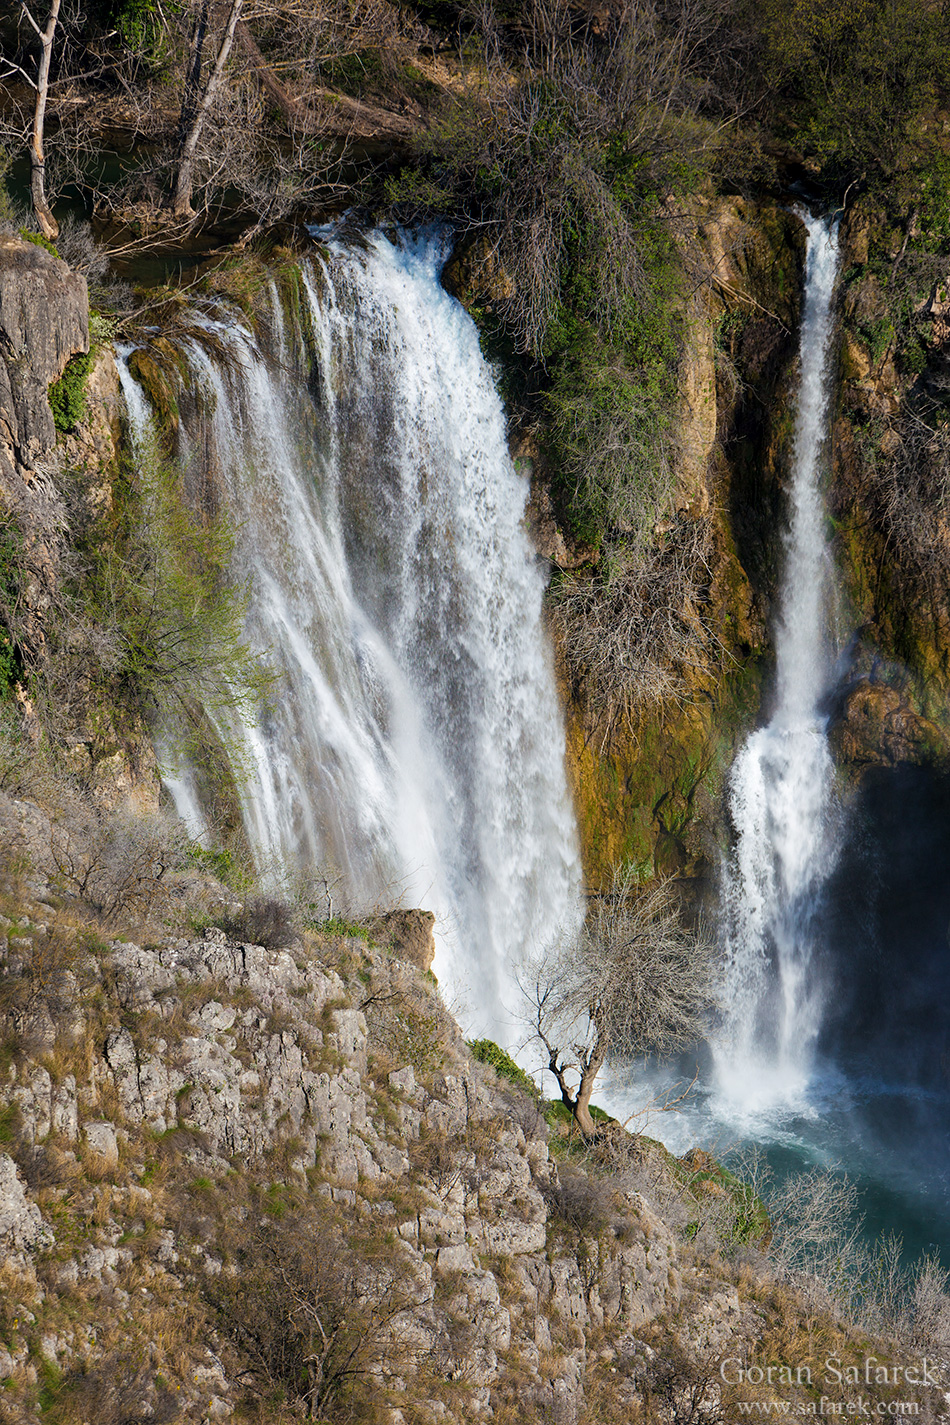 croatia, waterfall, krka, manojlovac, river